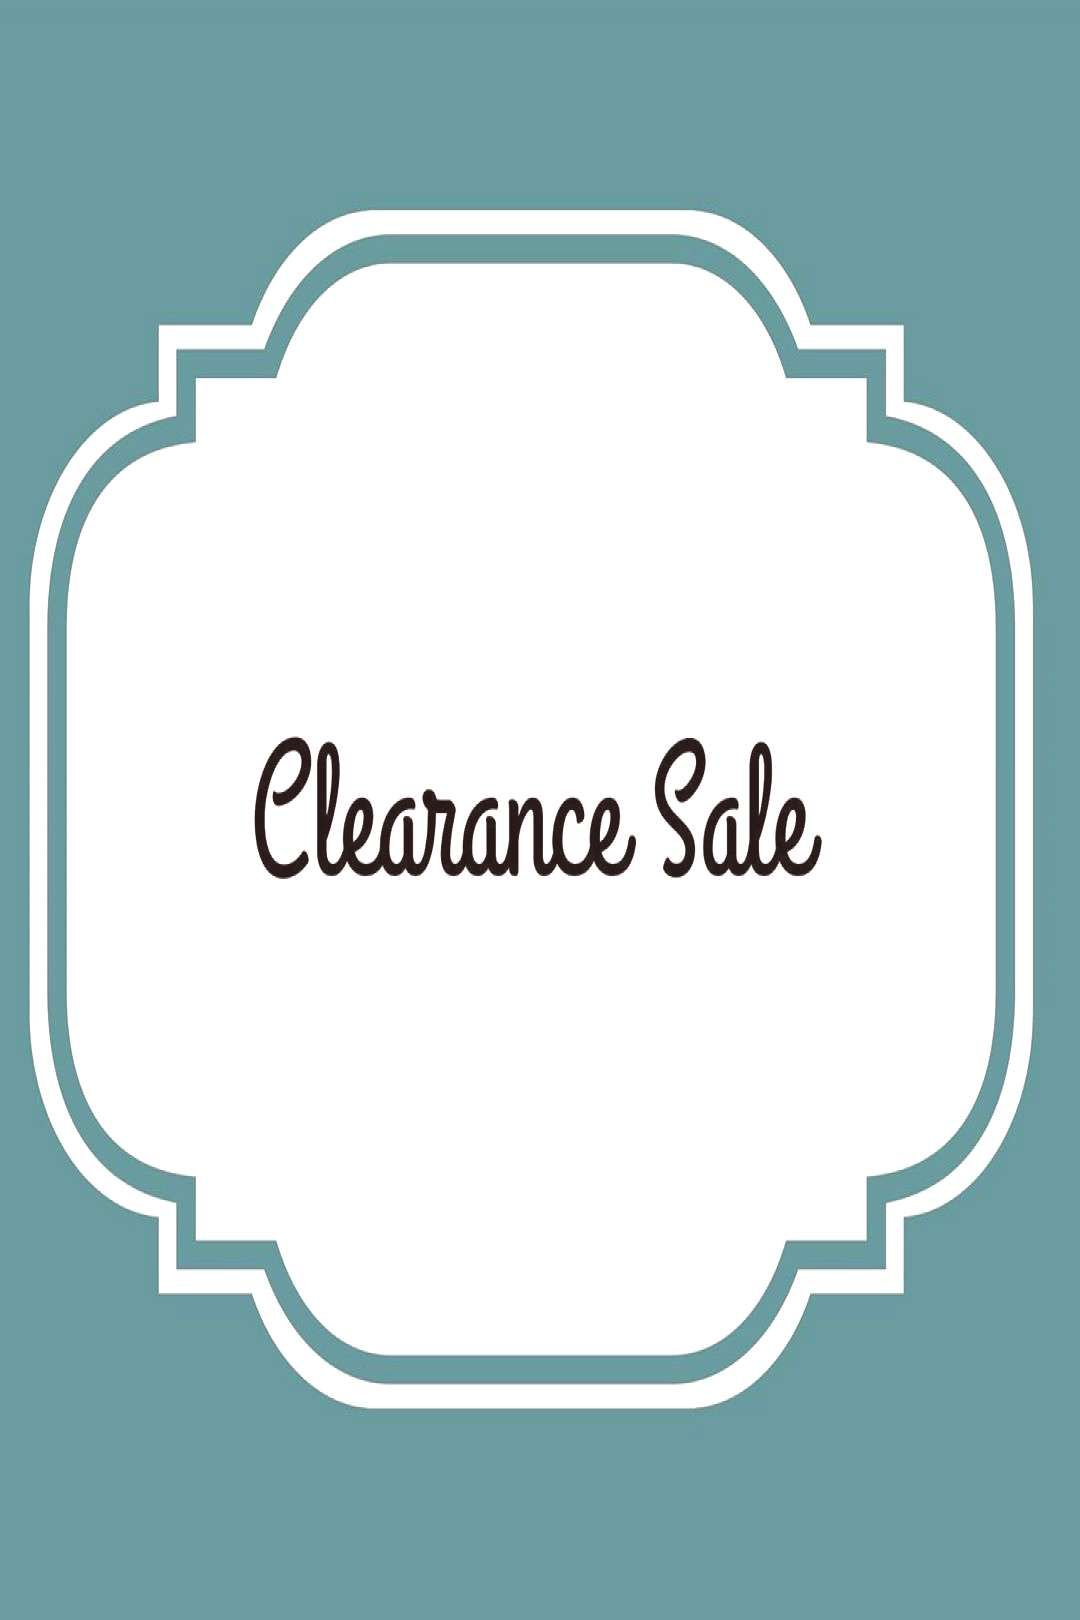 #clearance #gorgeous #possible #estate #today #until #sale #11am #text #that #says #4pm #lo Clearance Estate Sale today... 11am until 4pm! Gorgeous estate loYou can find Estate sales and more on our website.Clearance Esta...